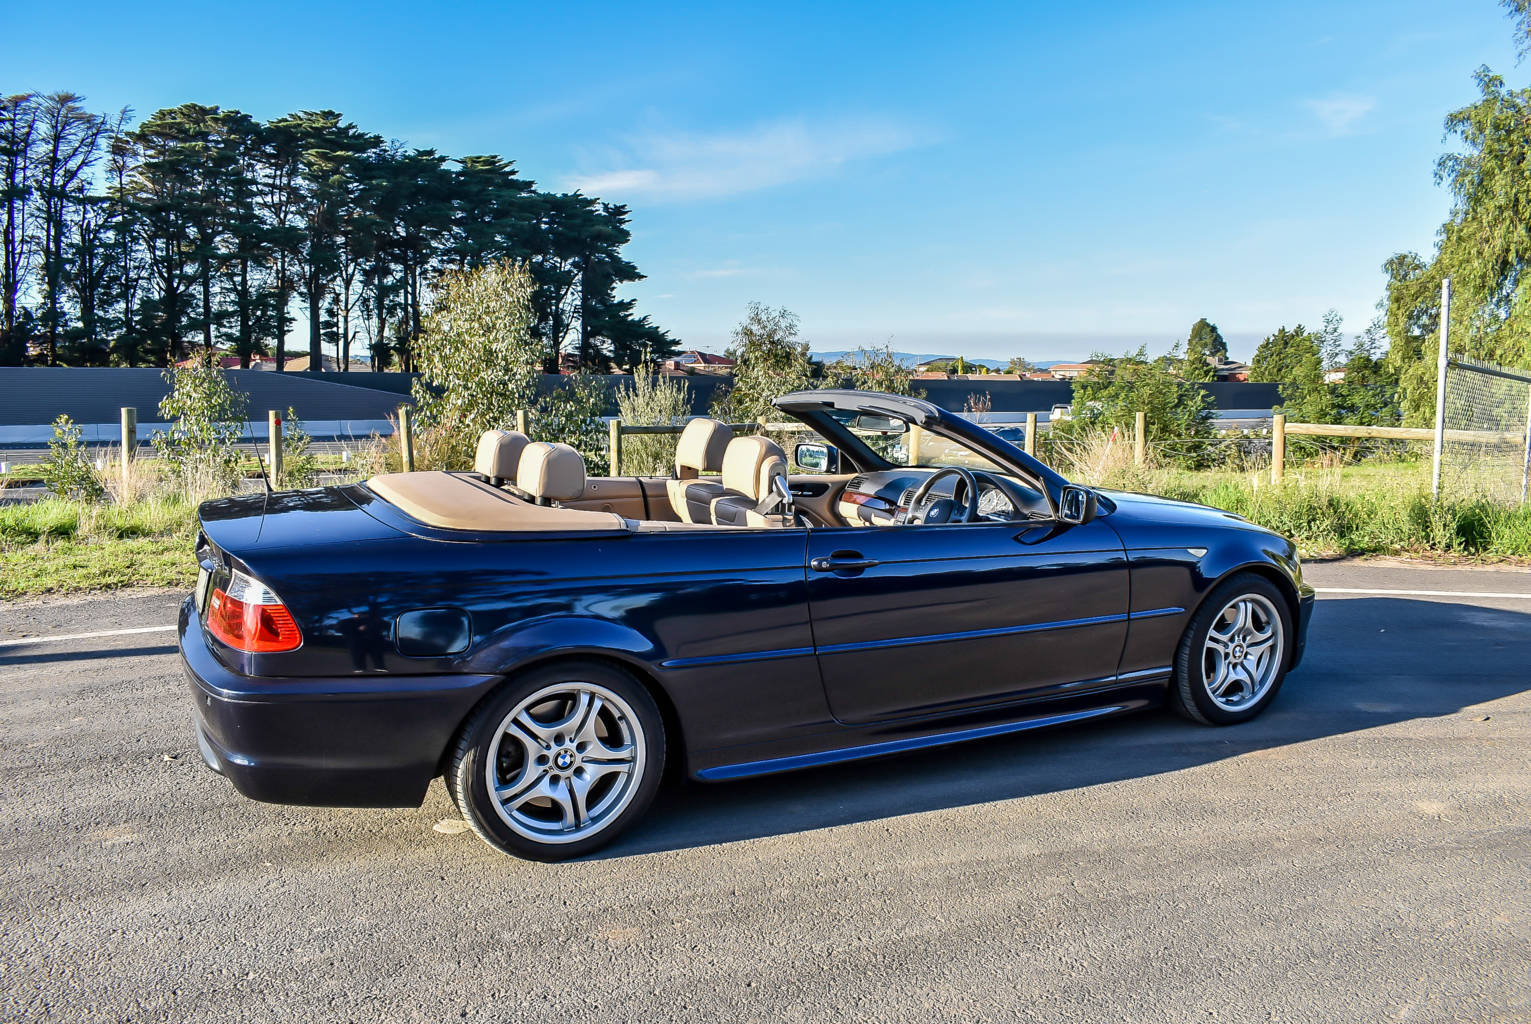 Surprising 2005 Bmw 330Ci E46 Convertible M Sports Find Me Cars Door Handles Collection Olytizonderlifede